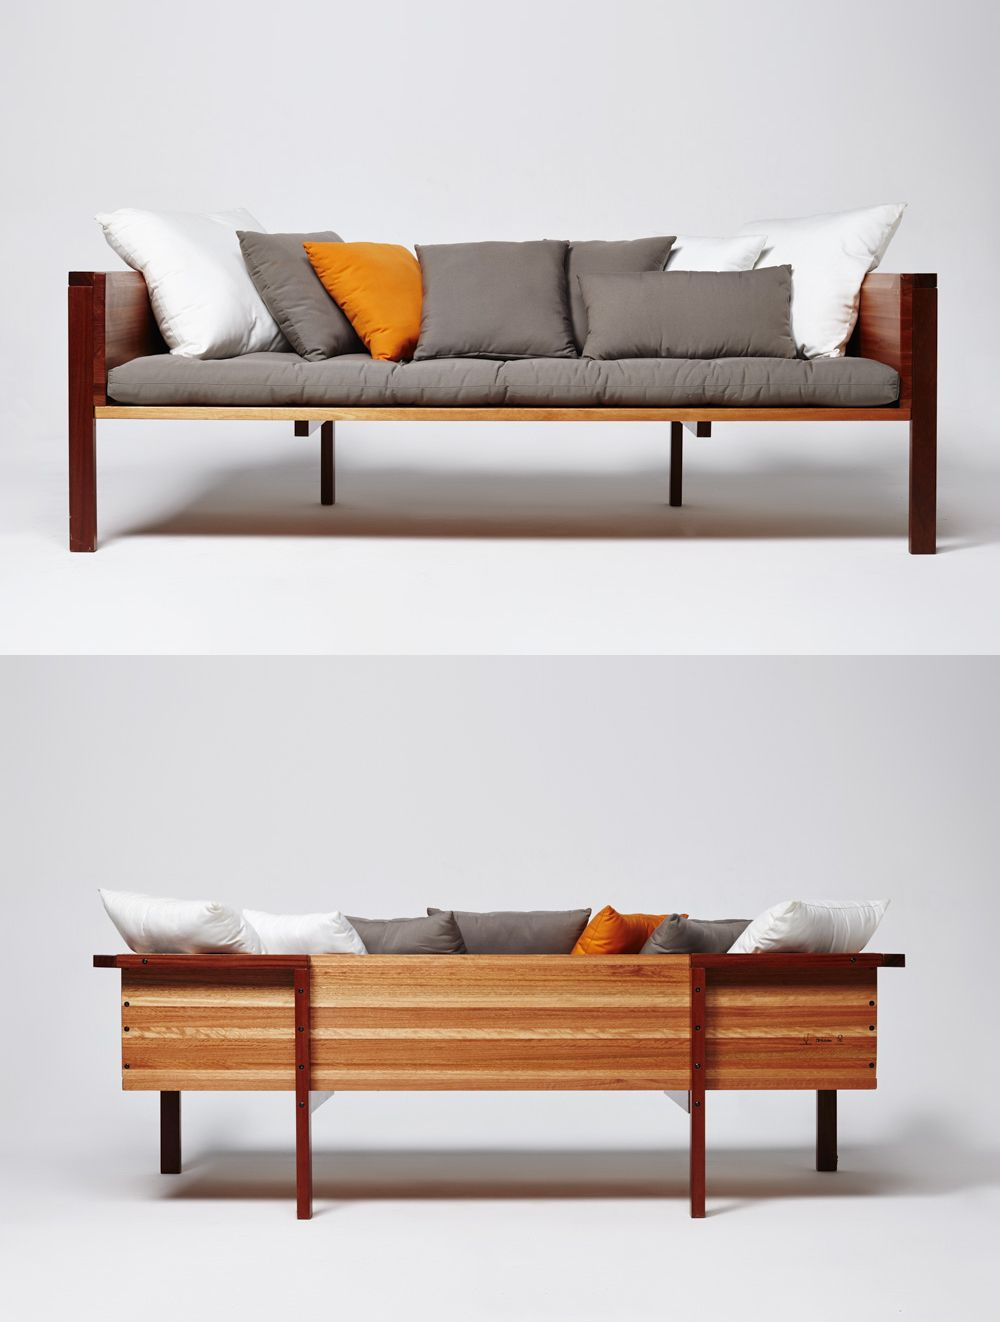 Daybed Charlotte // design Paulo Alves // photo Victor Affaro